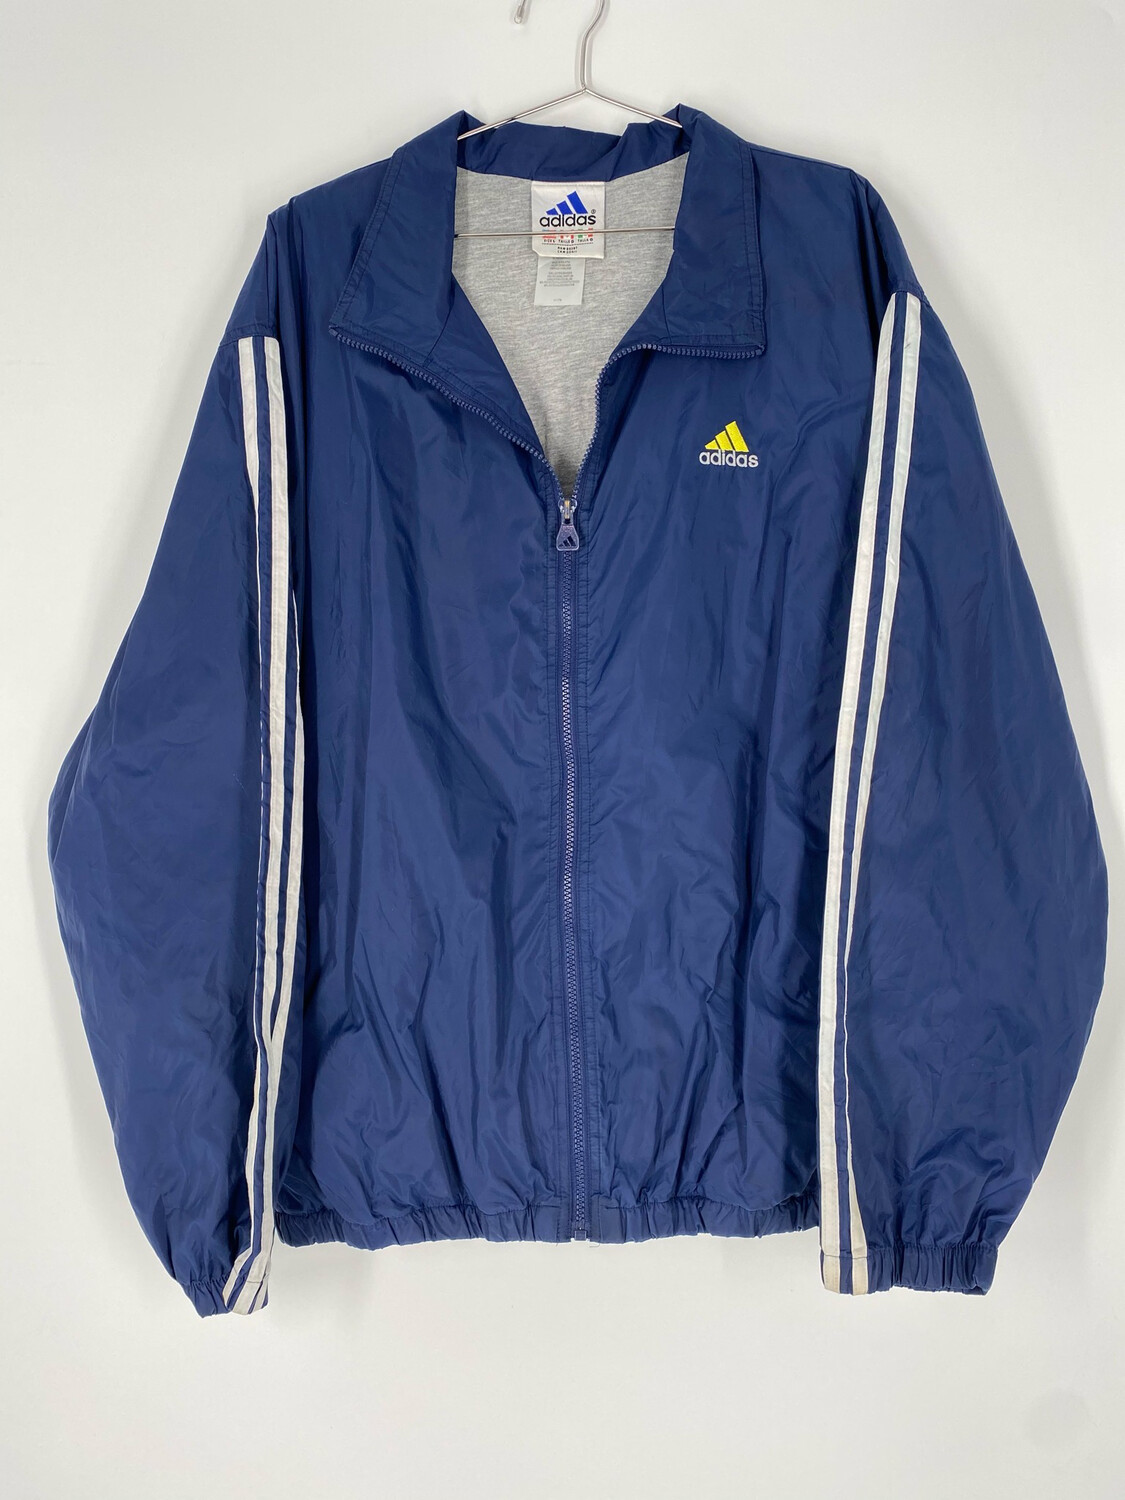 Adidas Blue Windbreaker Size Large